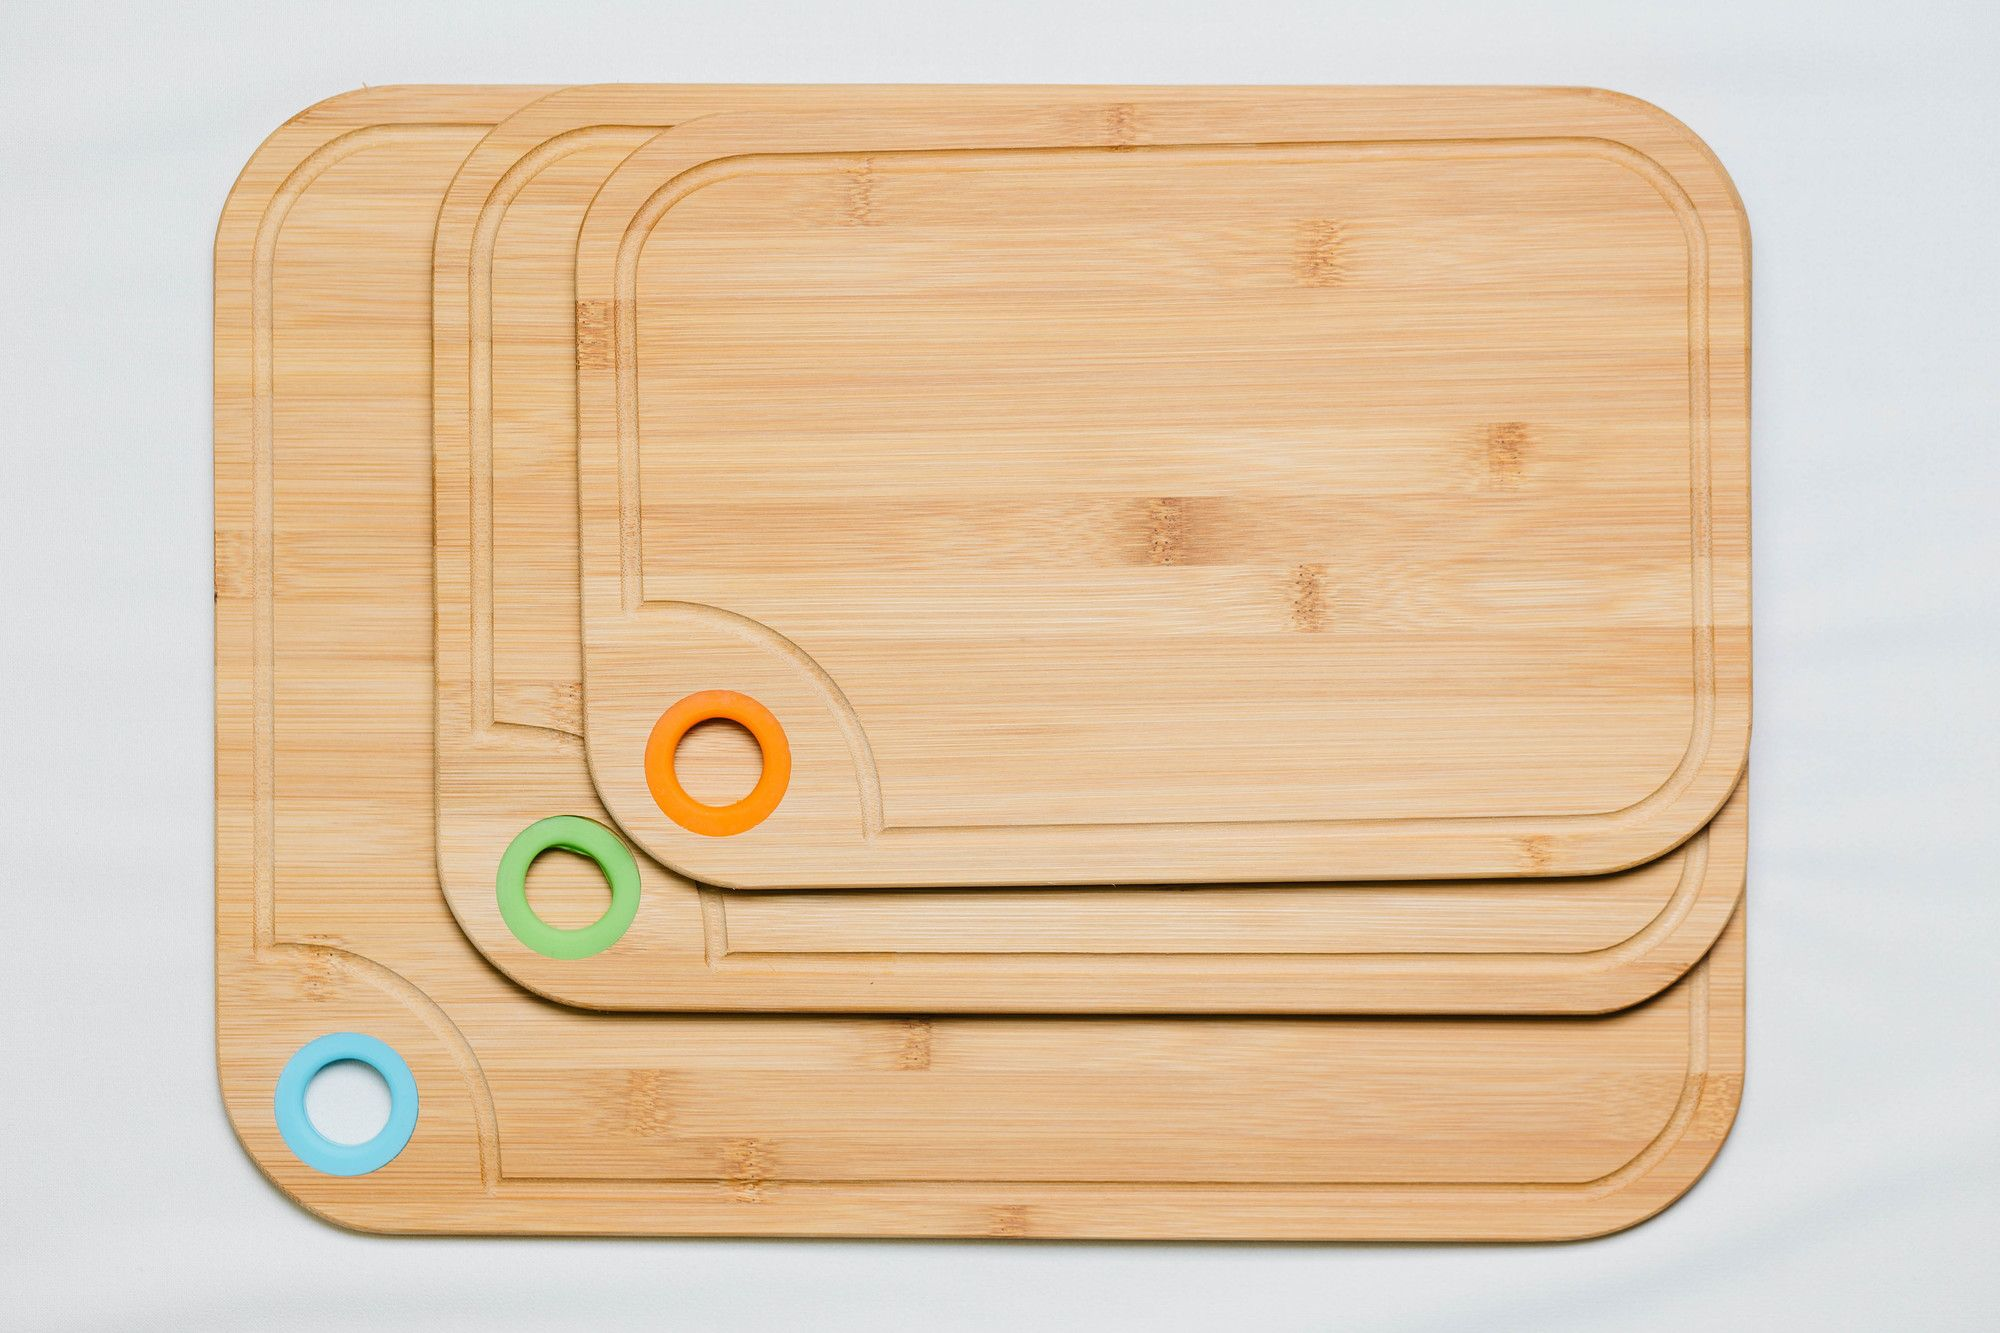 3 Piece Bamboo Cutting Board Set With Silicone Ring Cutting Boards